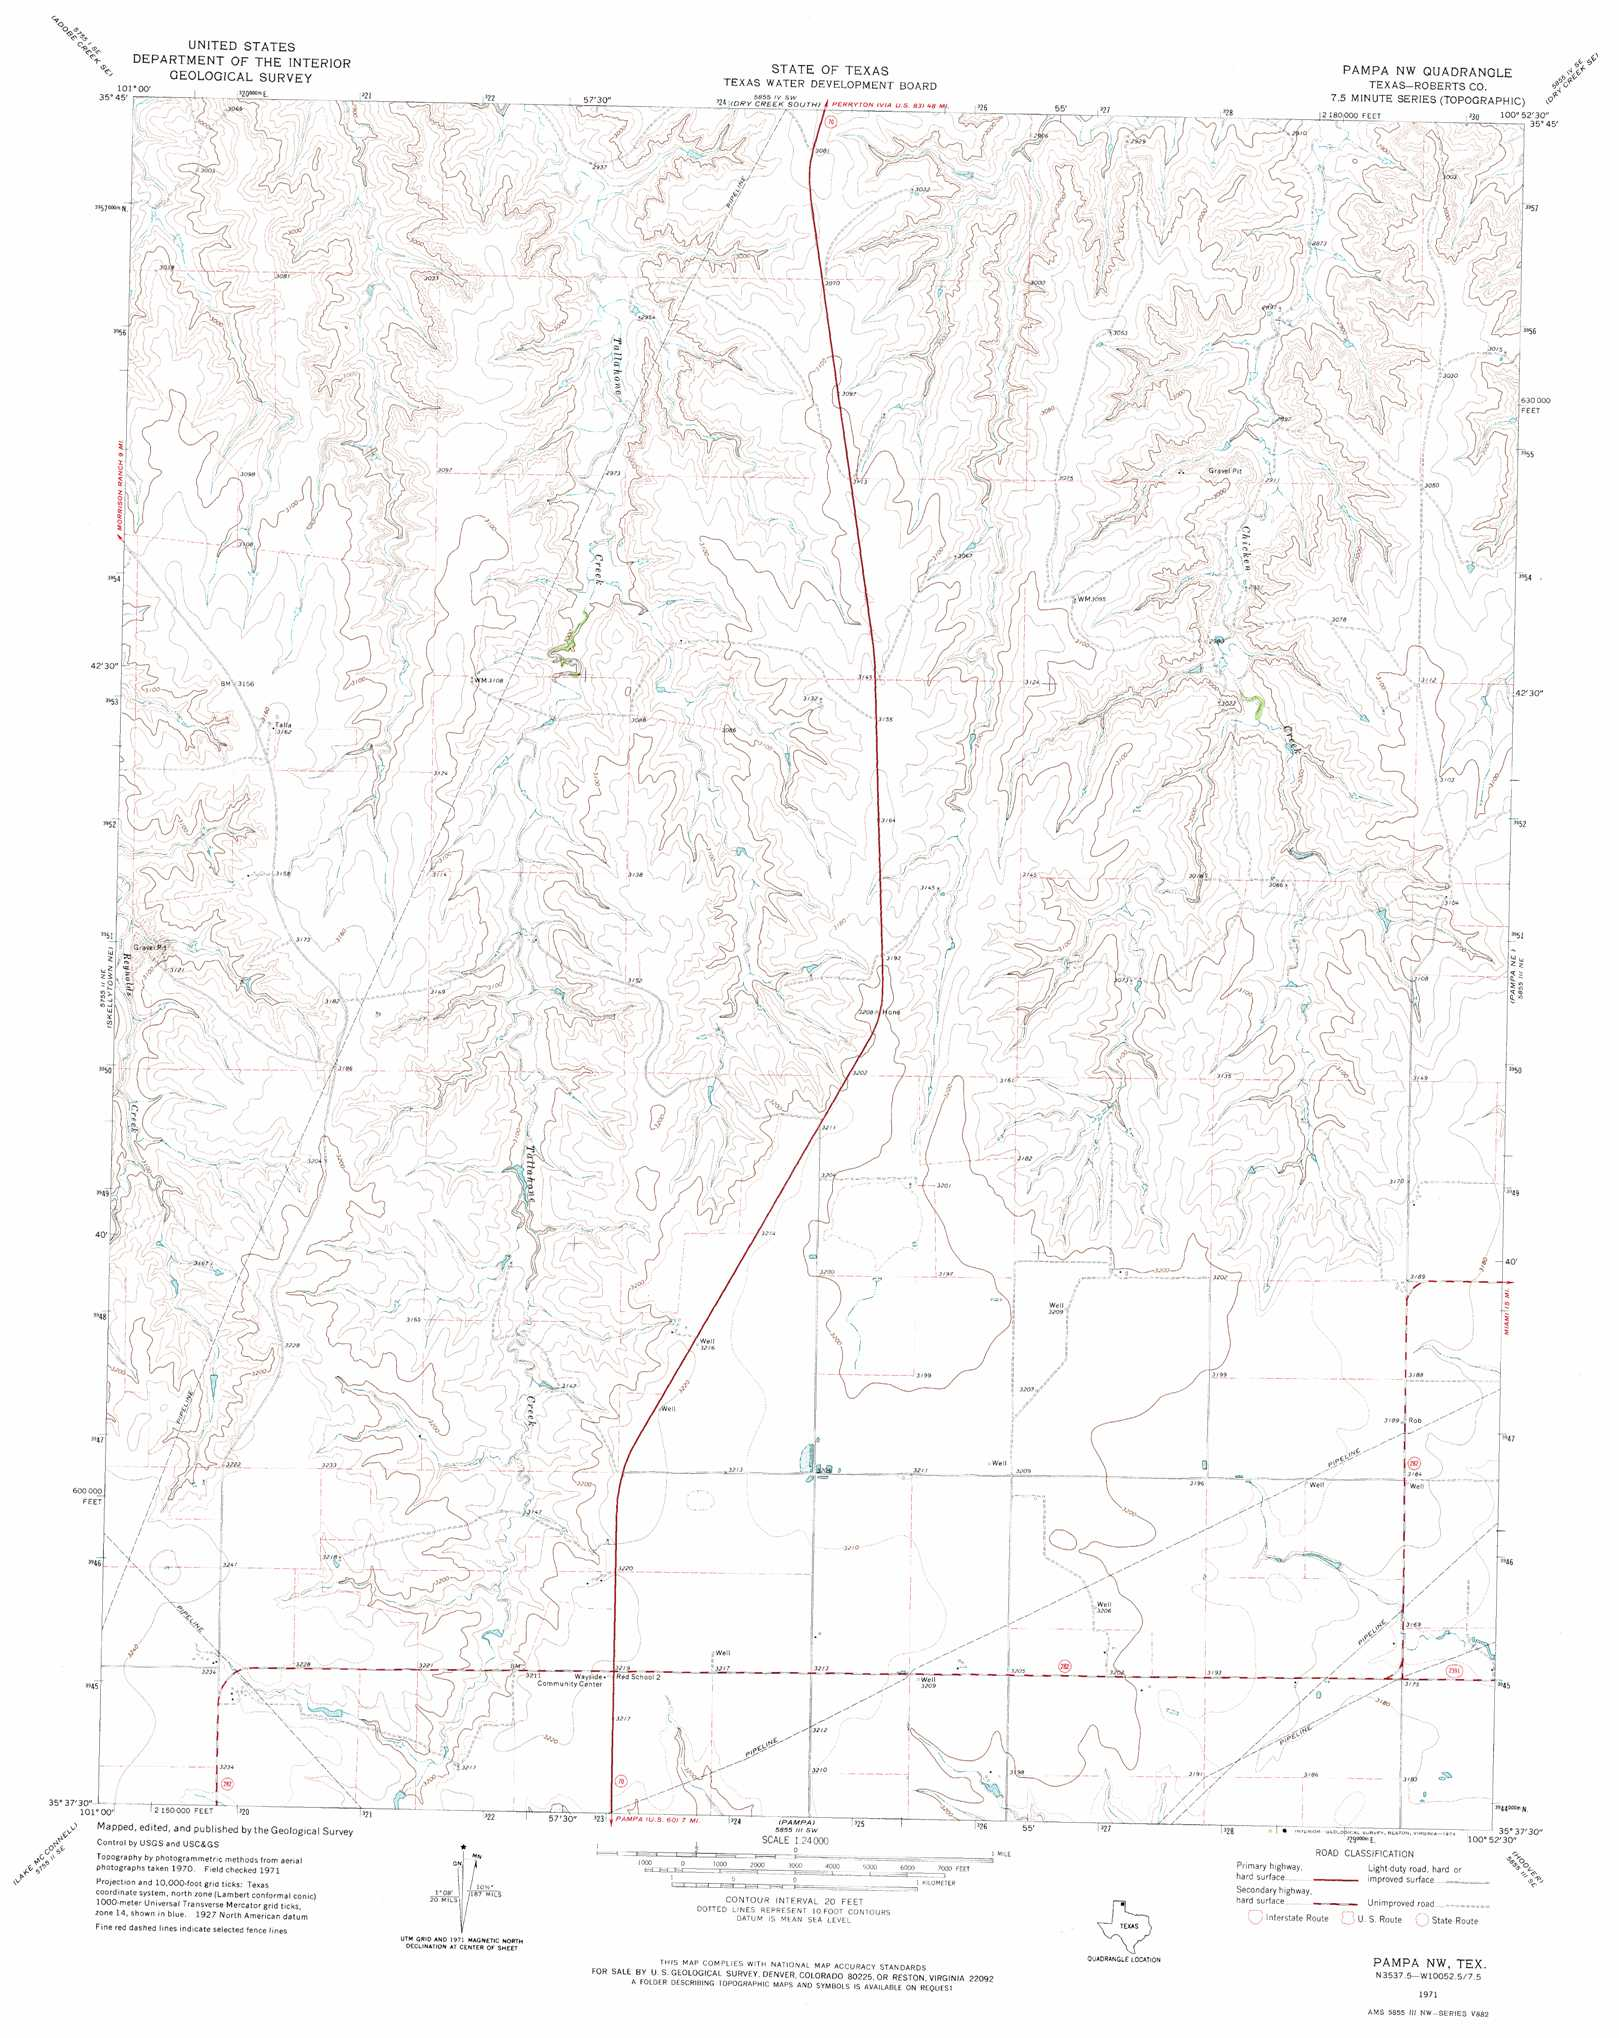 Pampa Nw topographic map, TX - USGS Topo Quad 35100f8 on